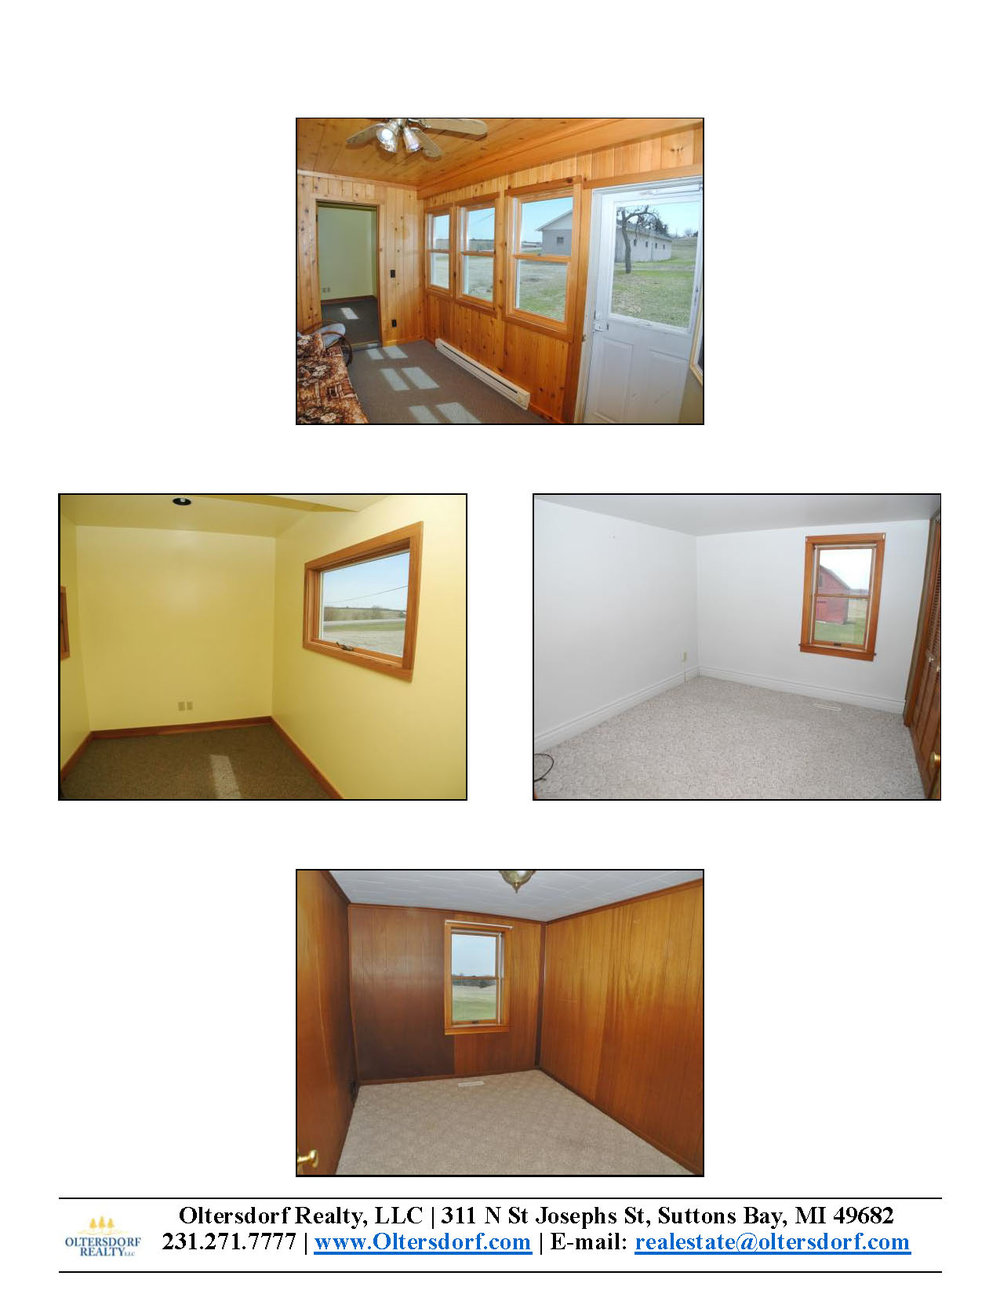 910 S Popp Road, Lake Leelanau - For sale by Oltersdorf Realty LLC (photo pages)_Page_07.jpg